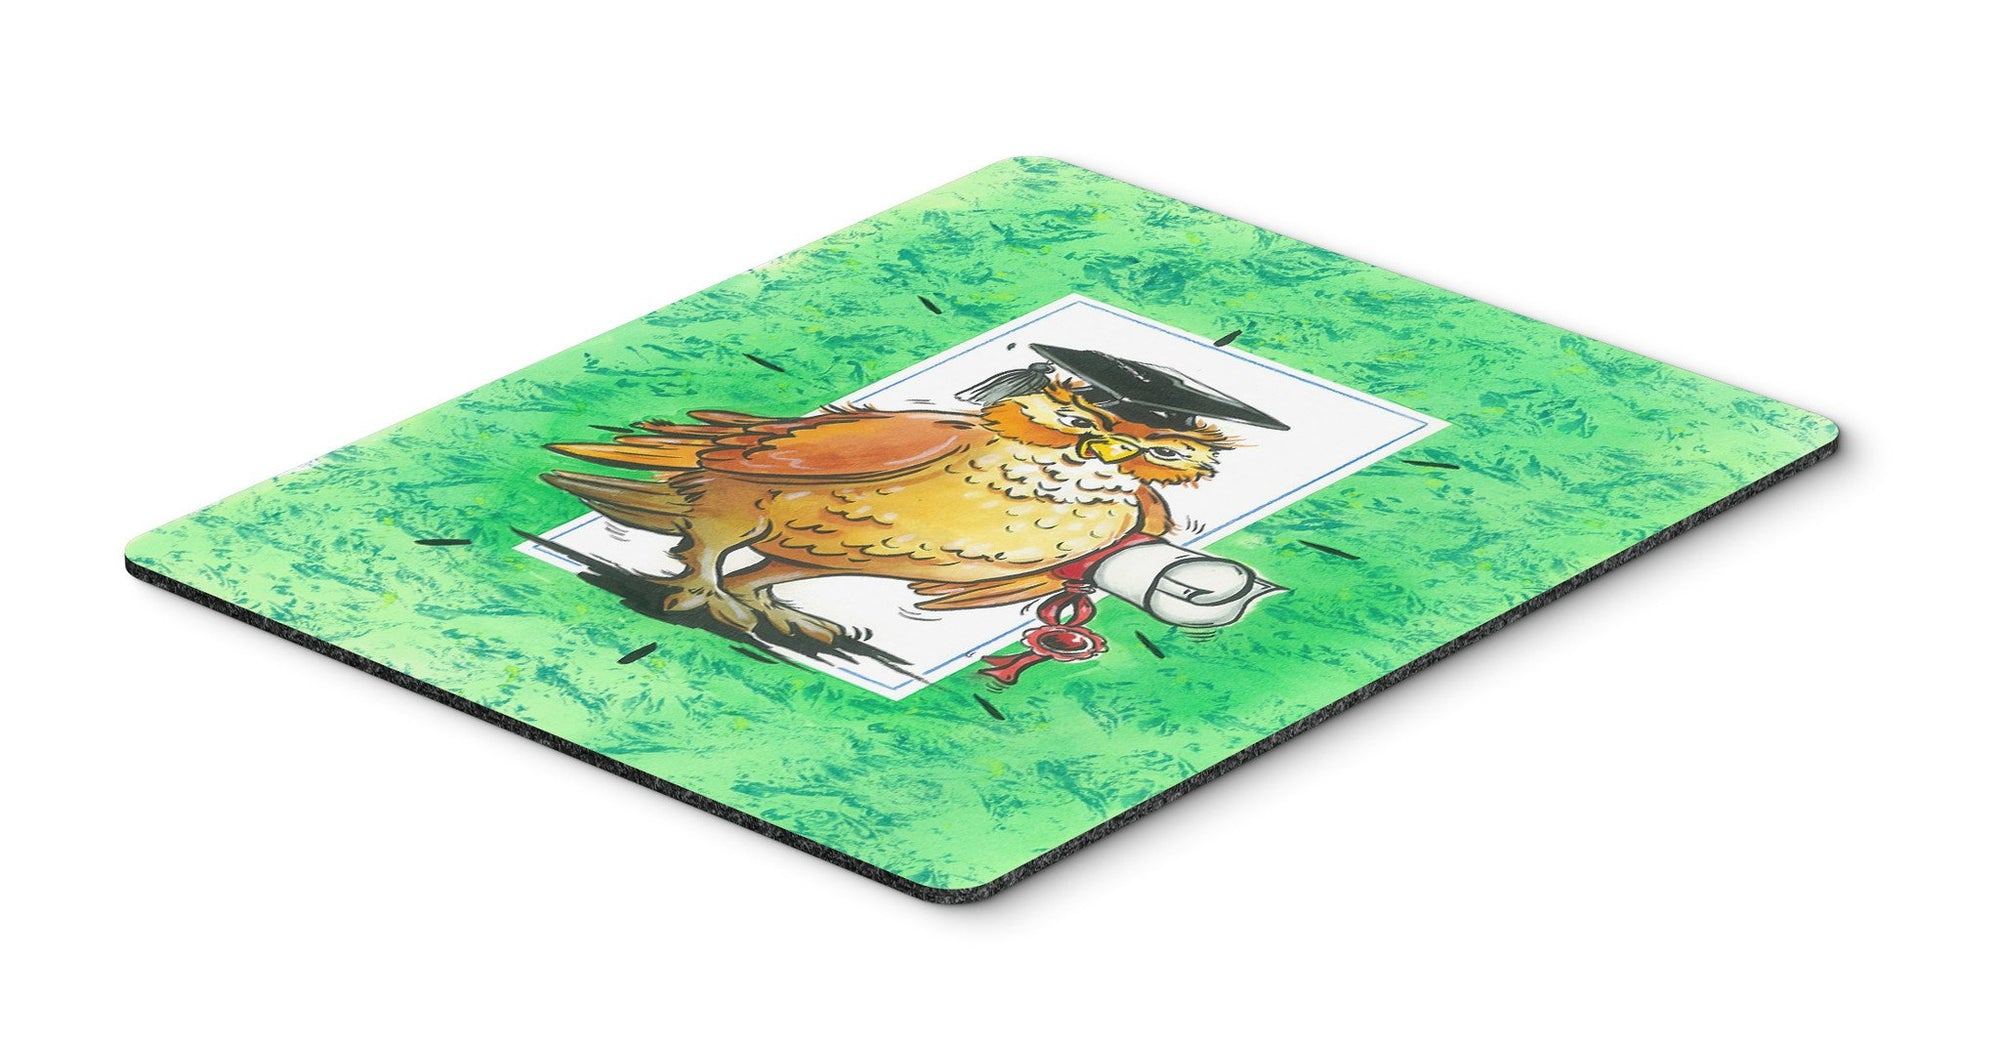 Graduation The Wise Owl Mouse Pad, Hot Pad or Trivet APH8469MP by Caroline's Treasures